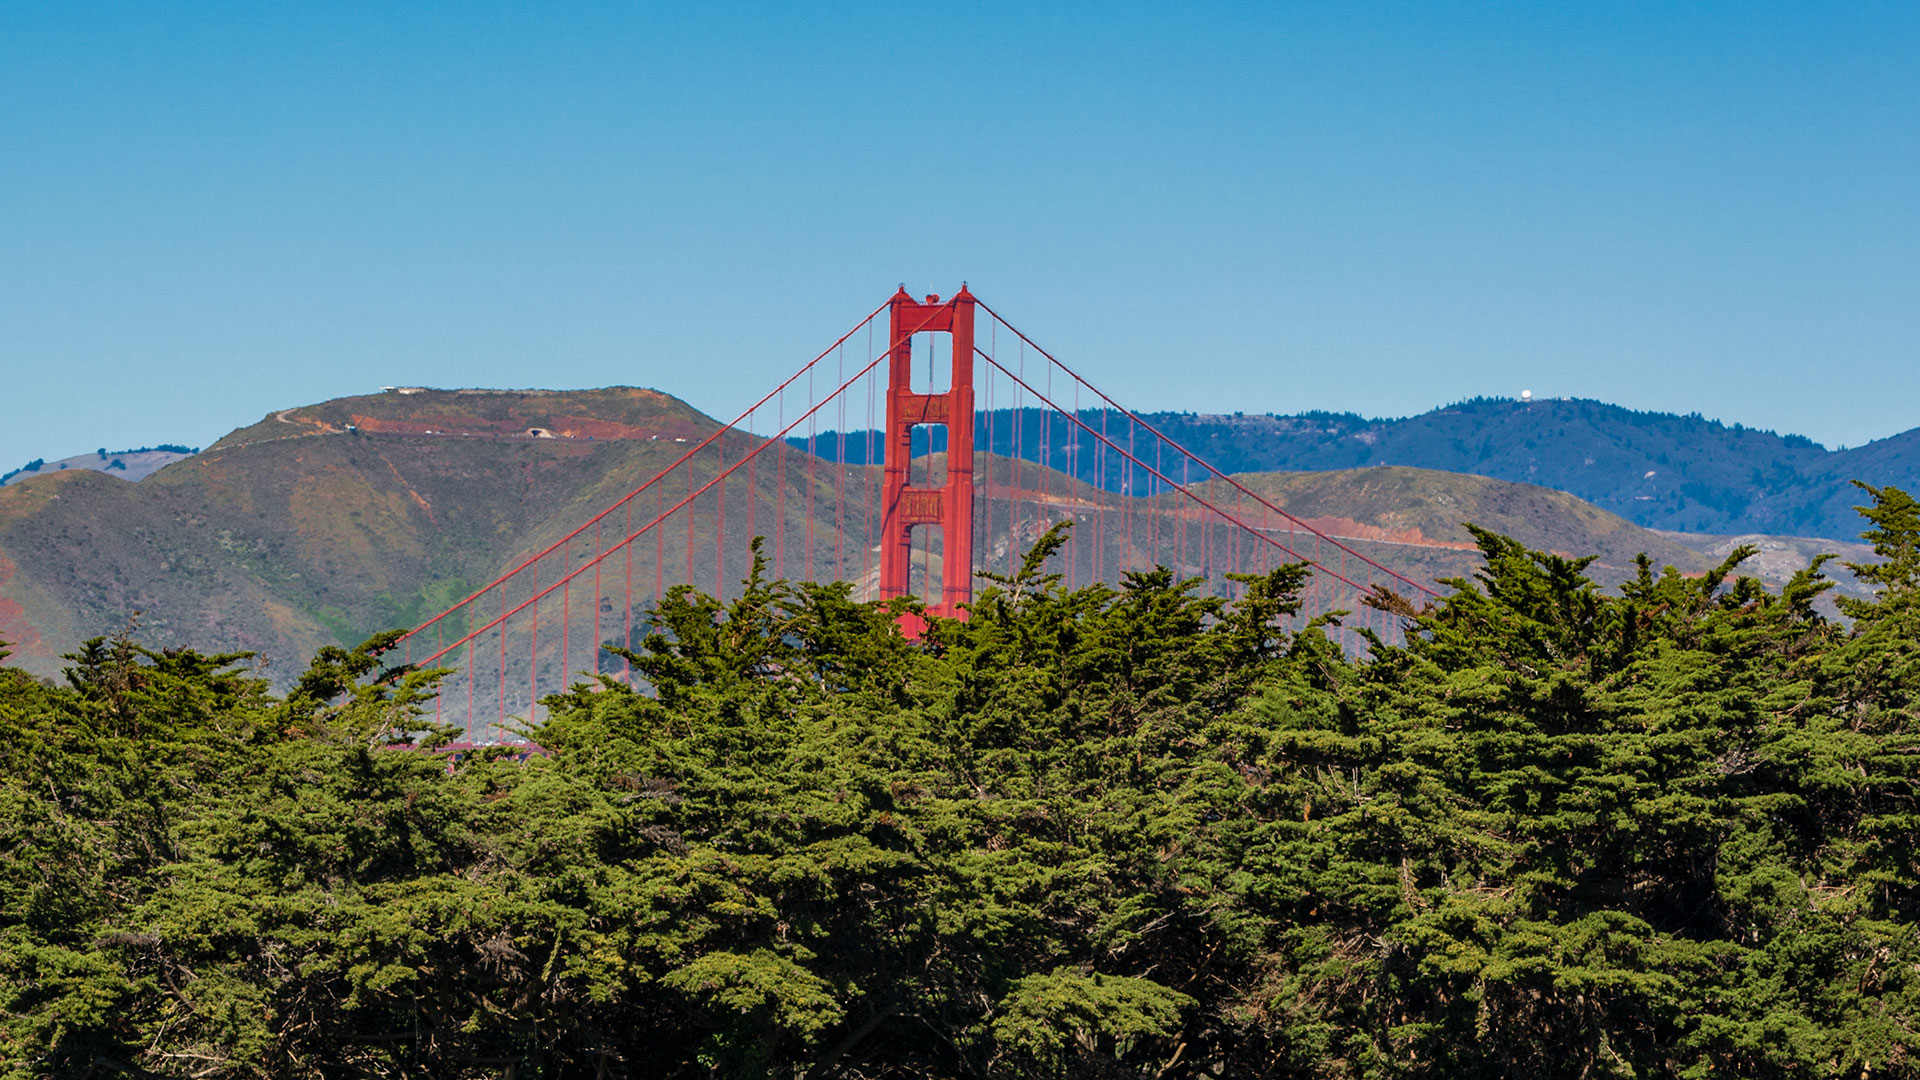 The Golden Gate Bridge Emerges From The Presidio Forest